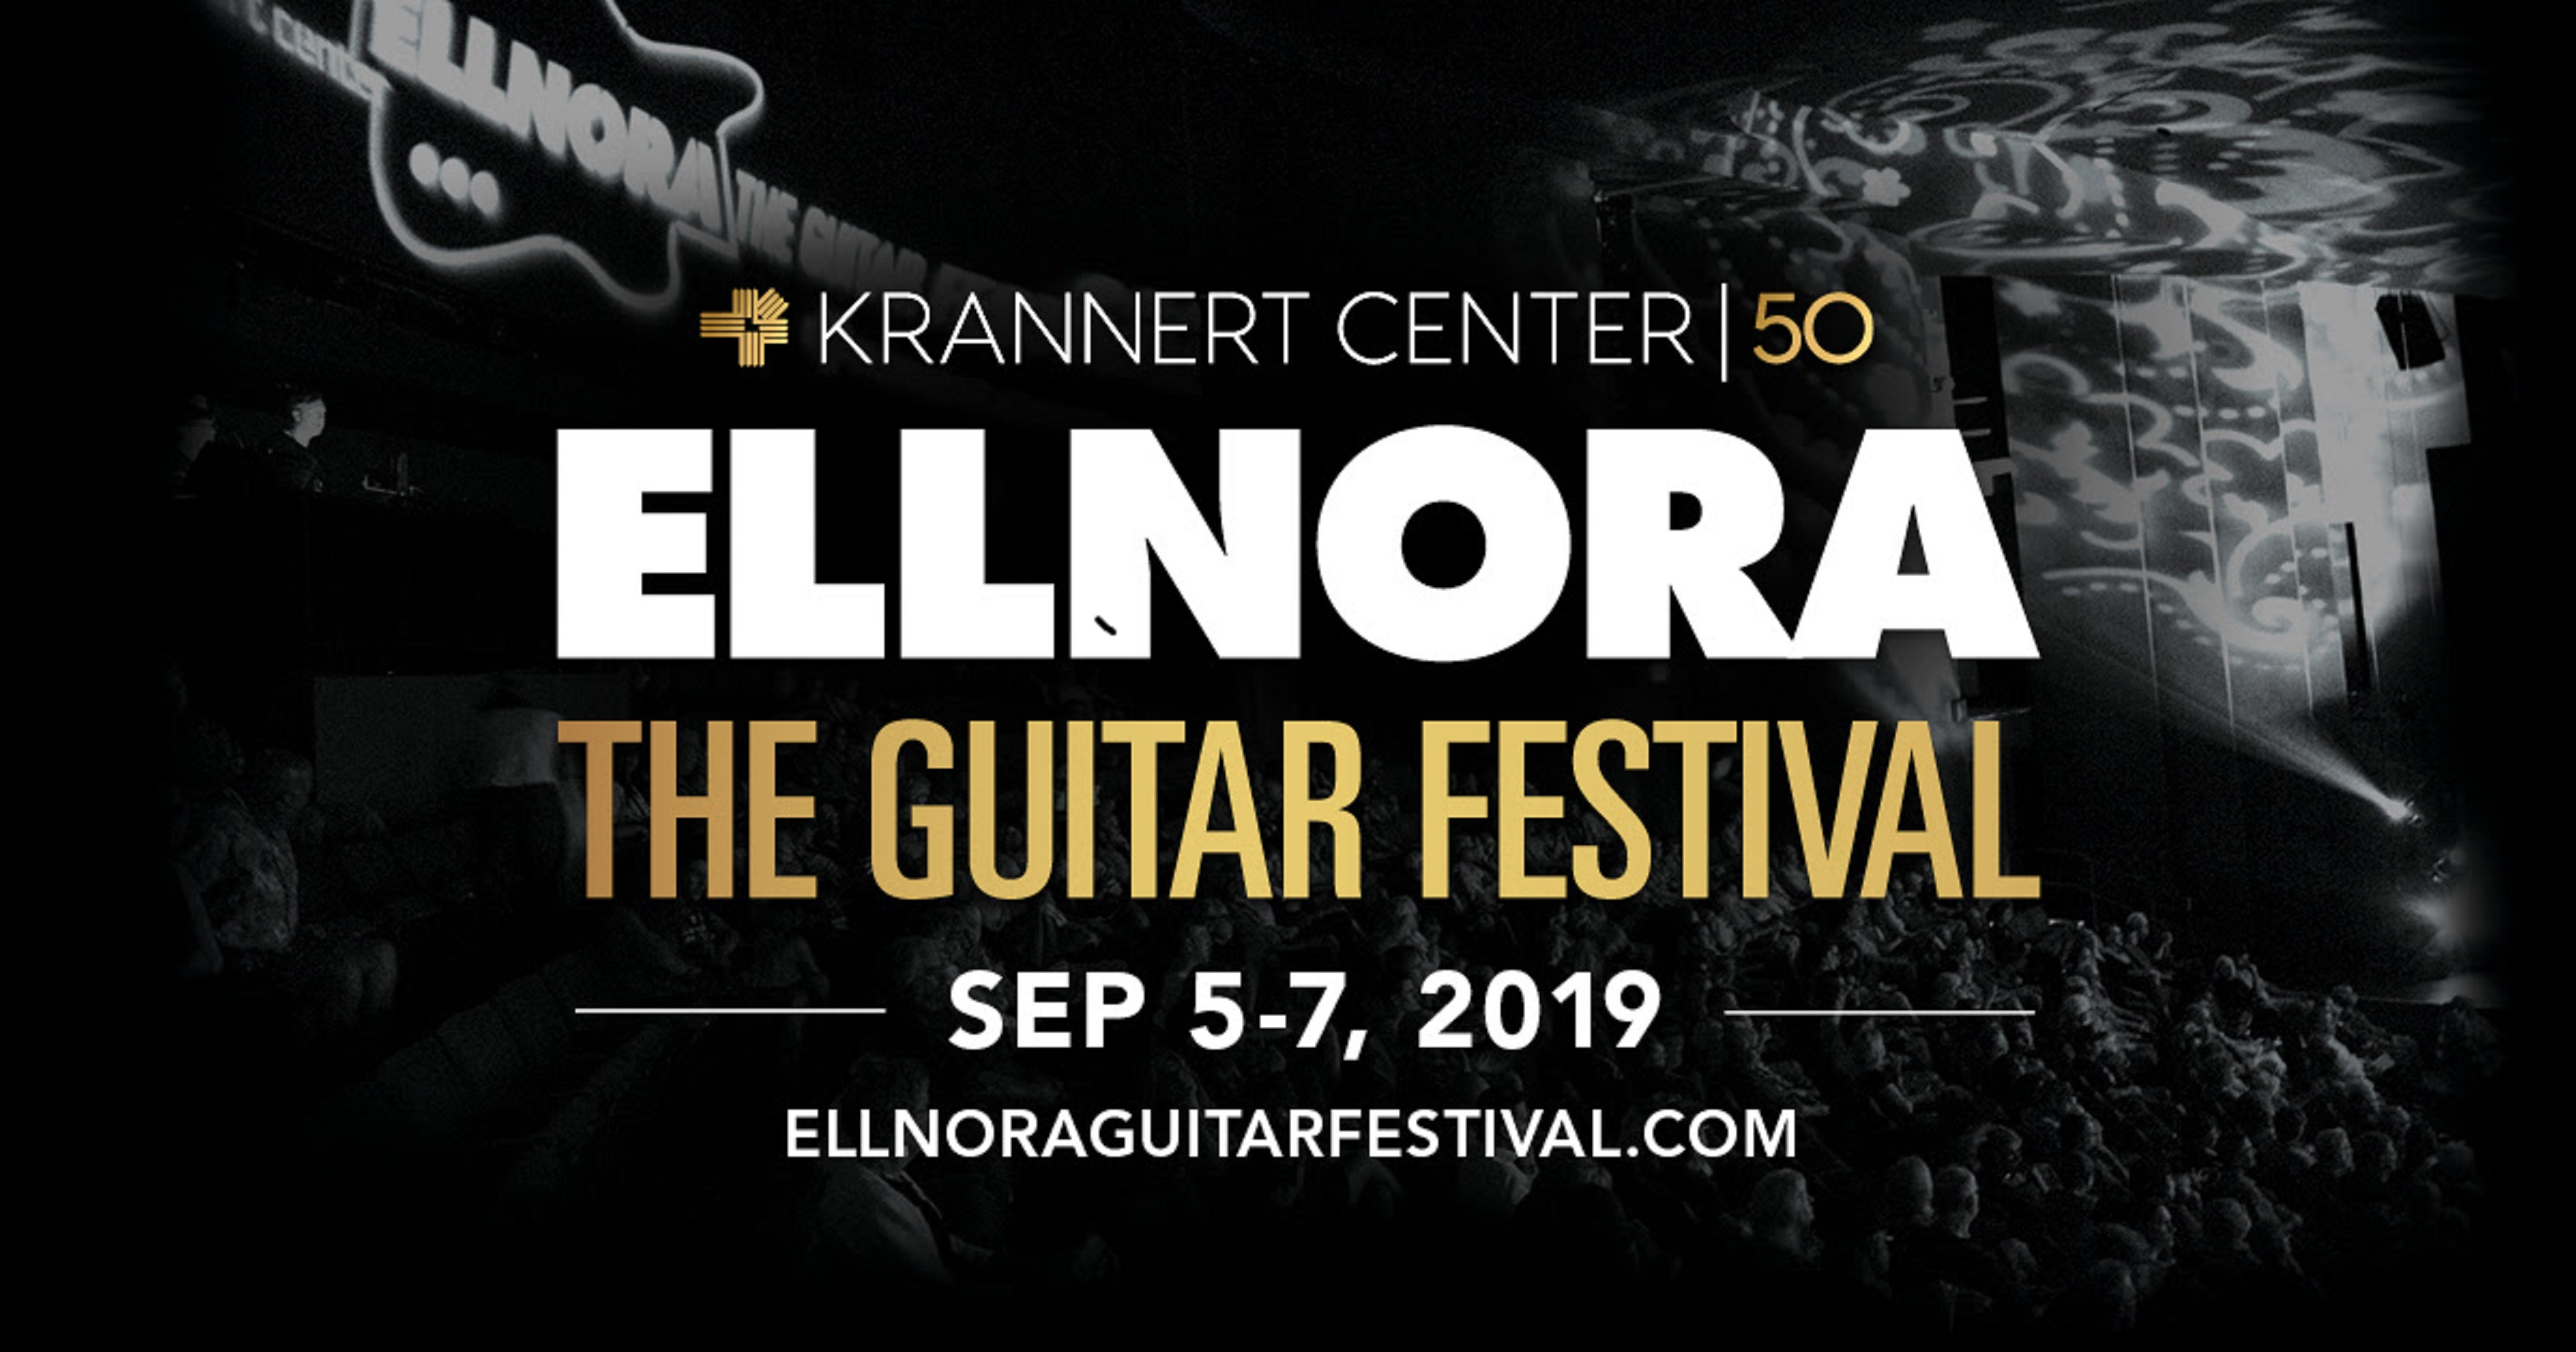 ELLNORA | The Guitar Festival Opening Night with Toko Telo, Bombino, and Samantha Fish with Luther Dickenson